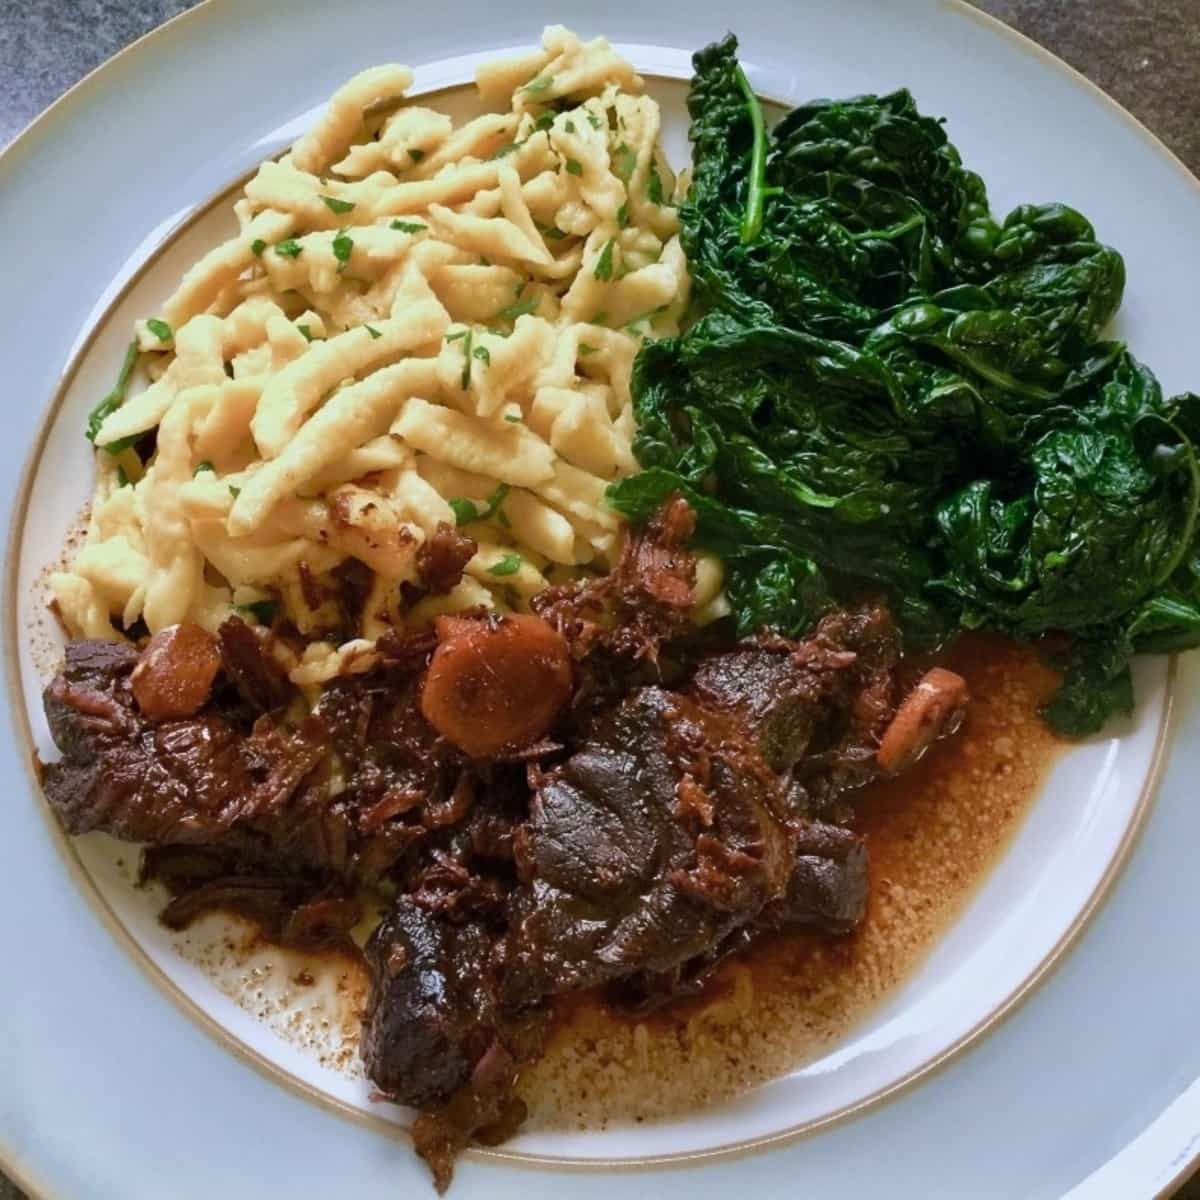 Chinese beef with soy and ginger, noodles and kale on a plate.